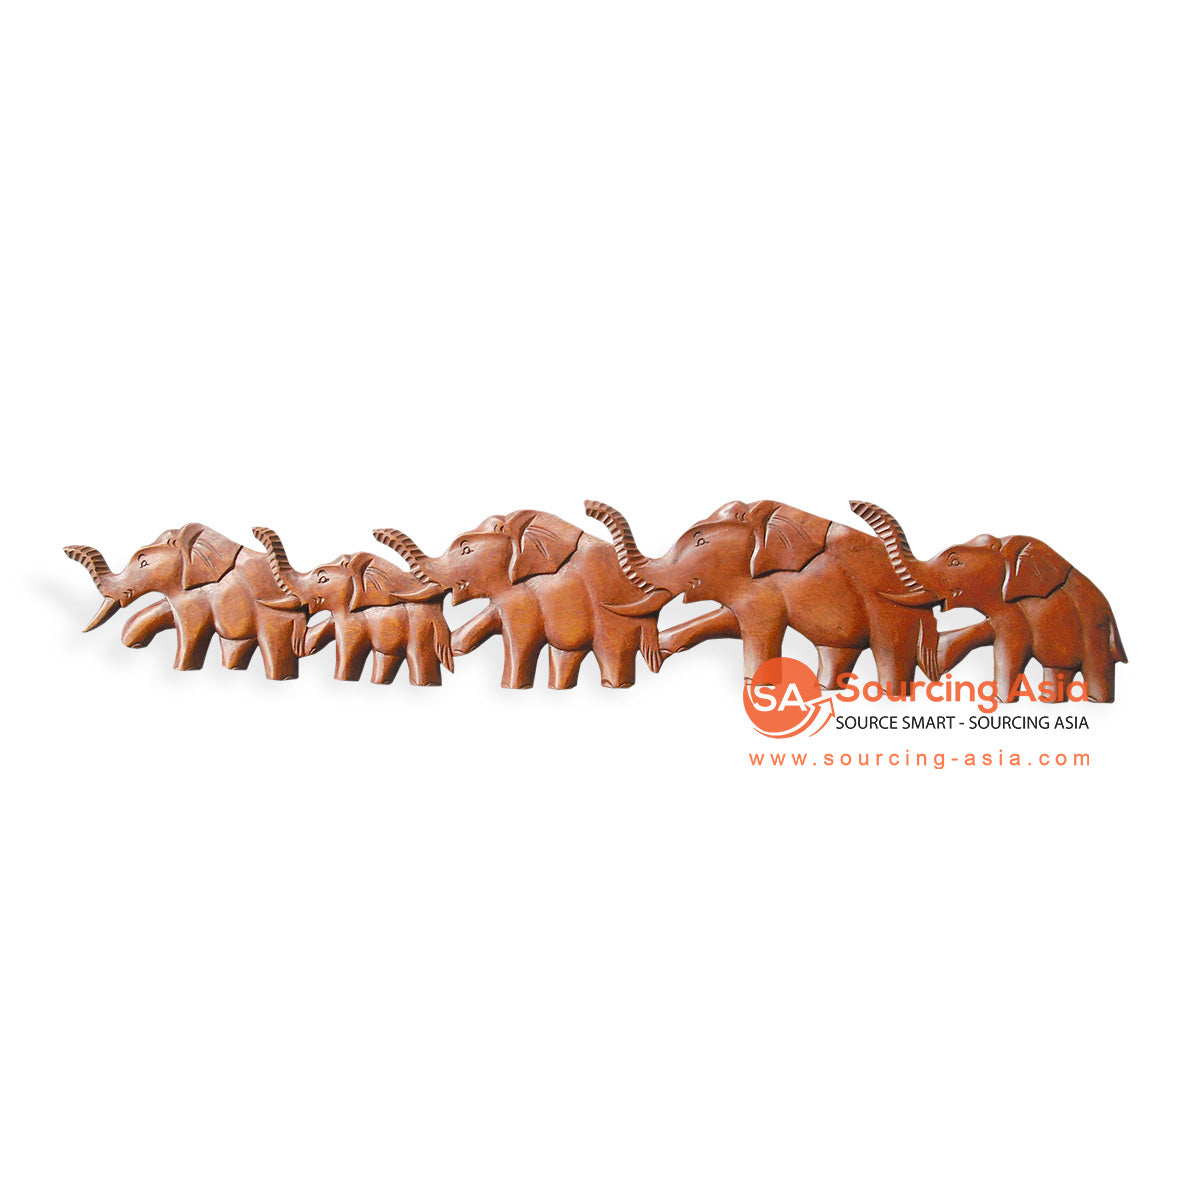 ICP29-100 WOODEN ELEPHANT WALL DECORATION